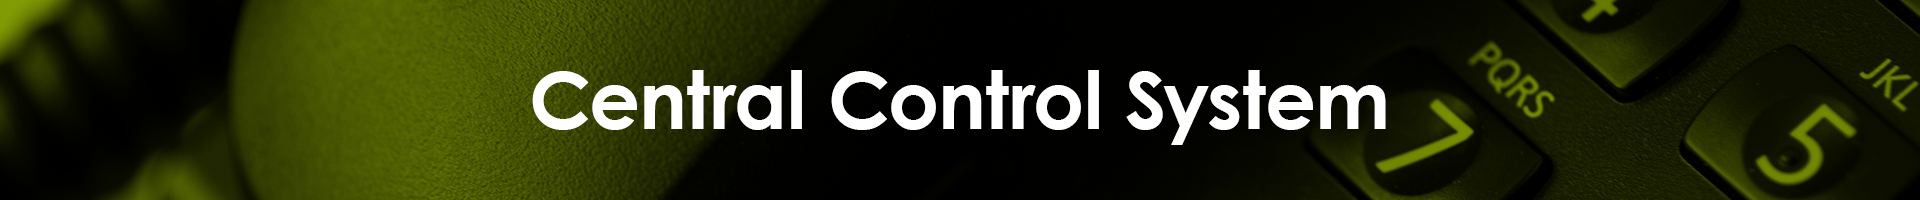 Central Control System - page title Central Control System